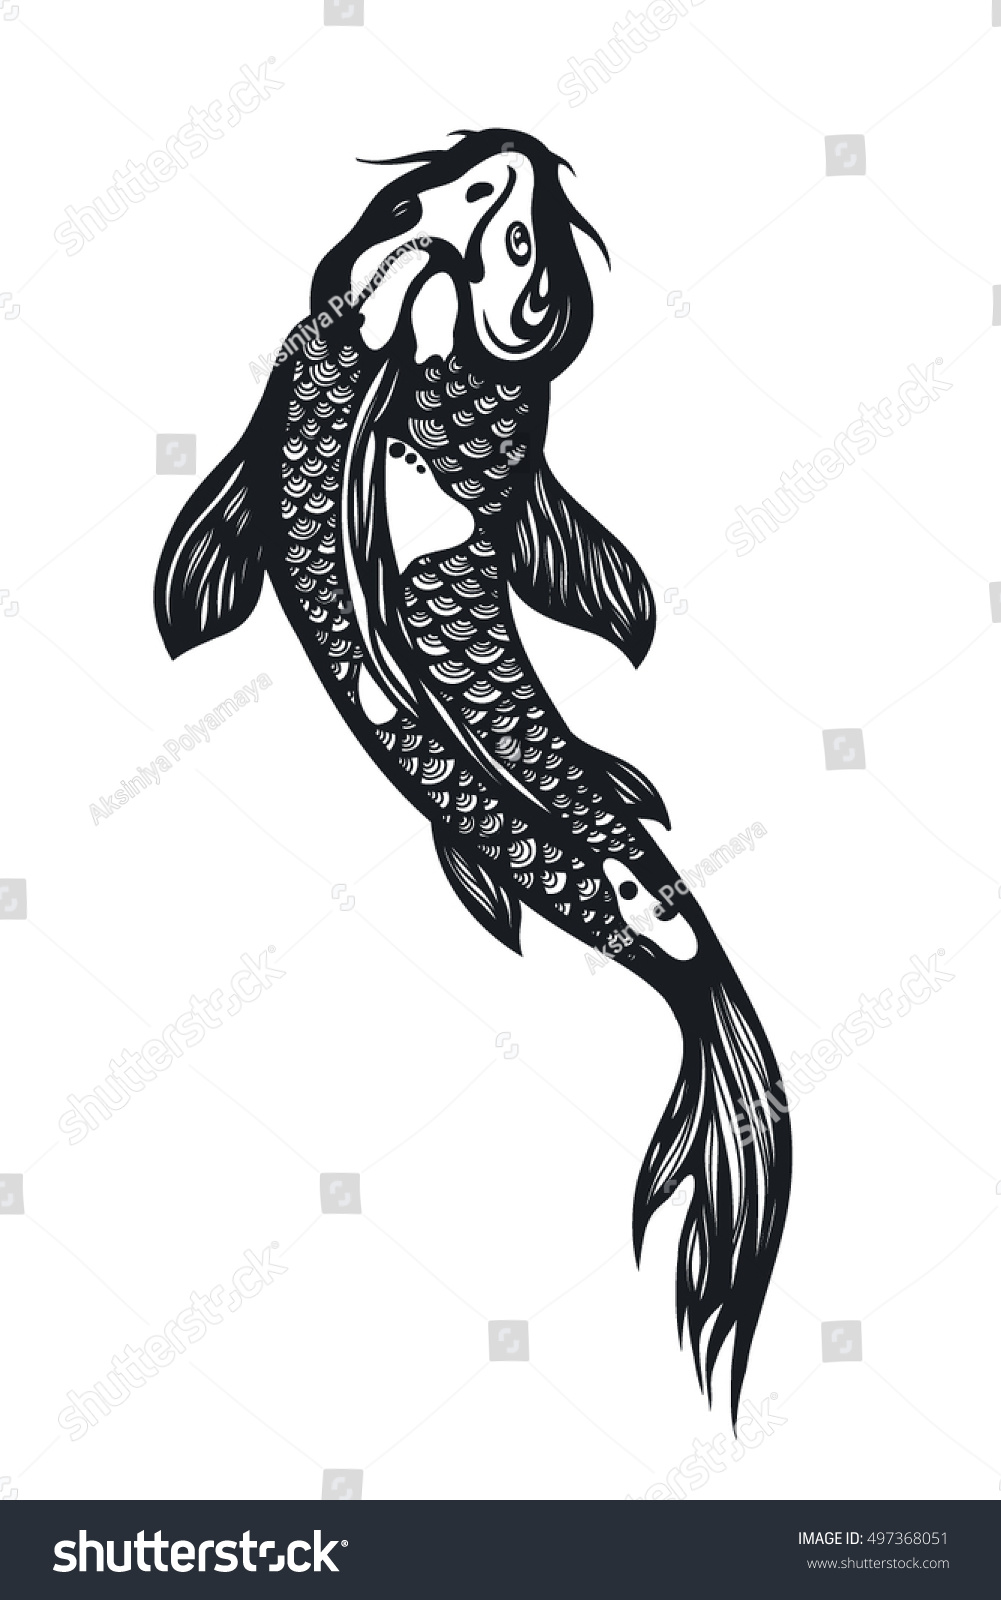 Fish koi carp chinese symbol good stock vector 497368051 chinese symbol of good luck courage persistence perseverance biocorpaavc Images